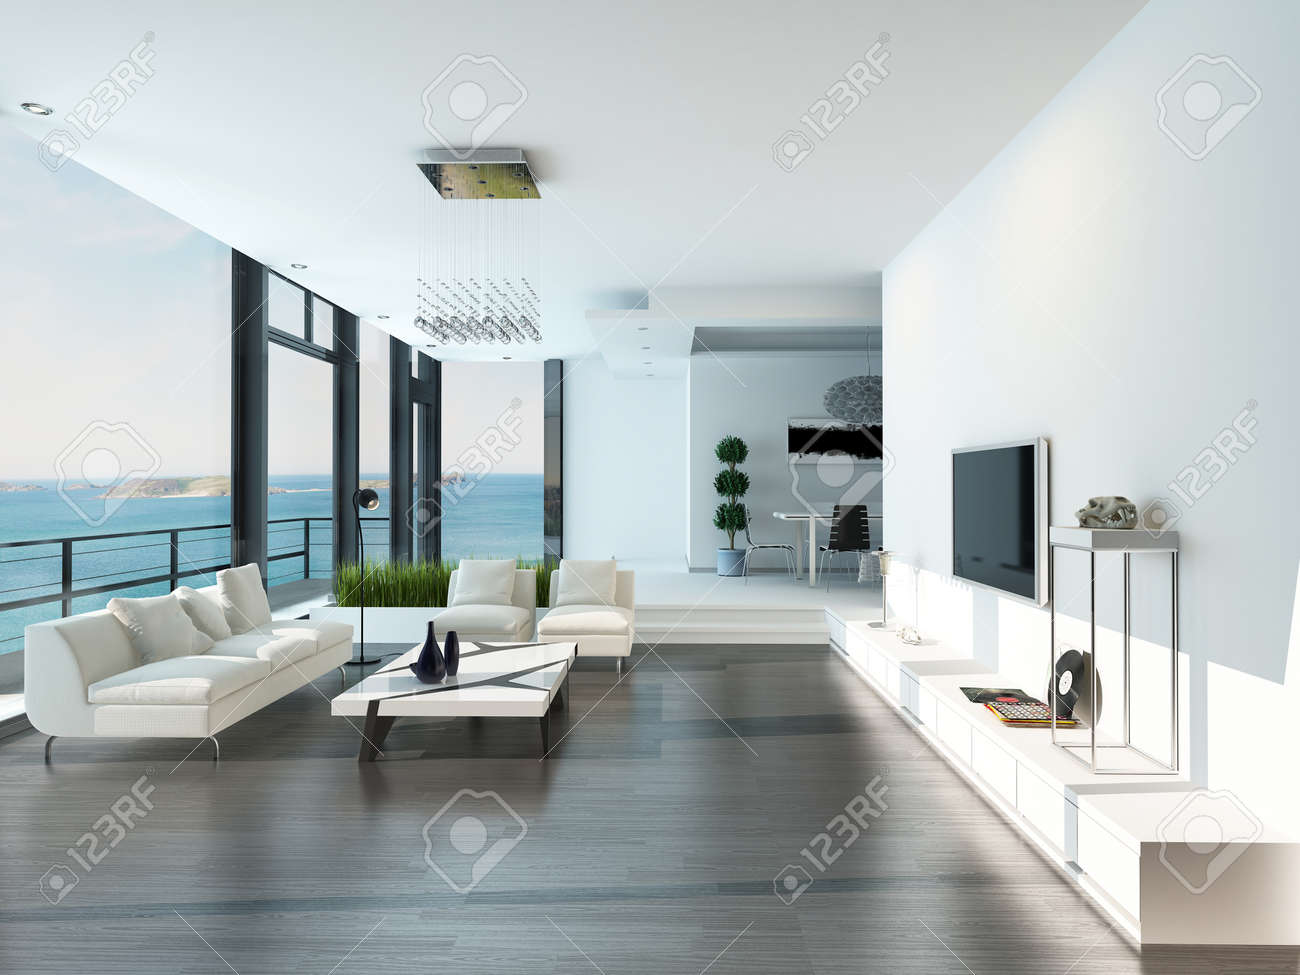 Modern Luxury Living Room Modern Luxurious Living Room Interior Stock Photo Picture And